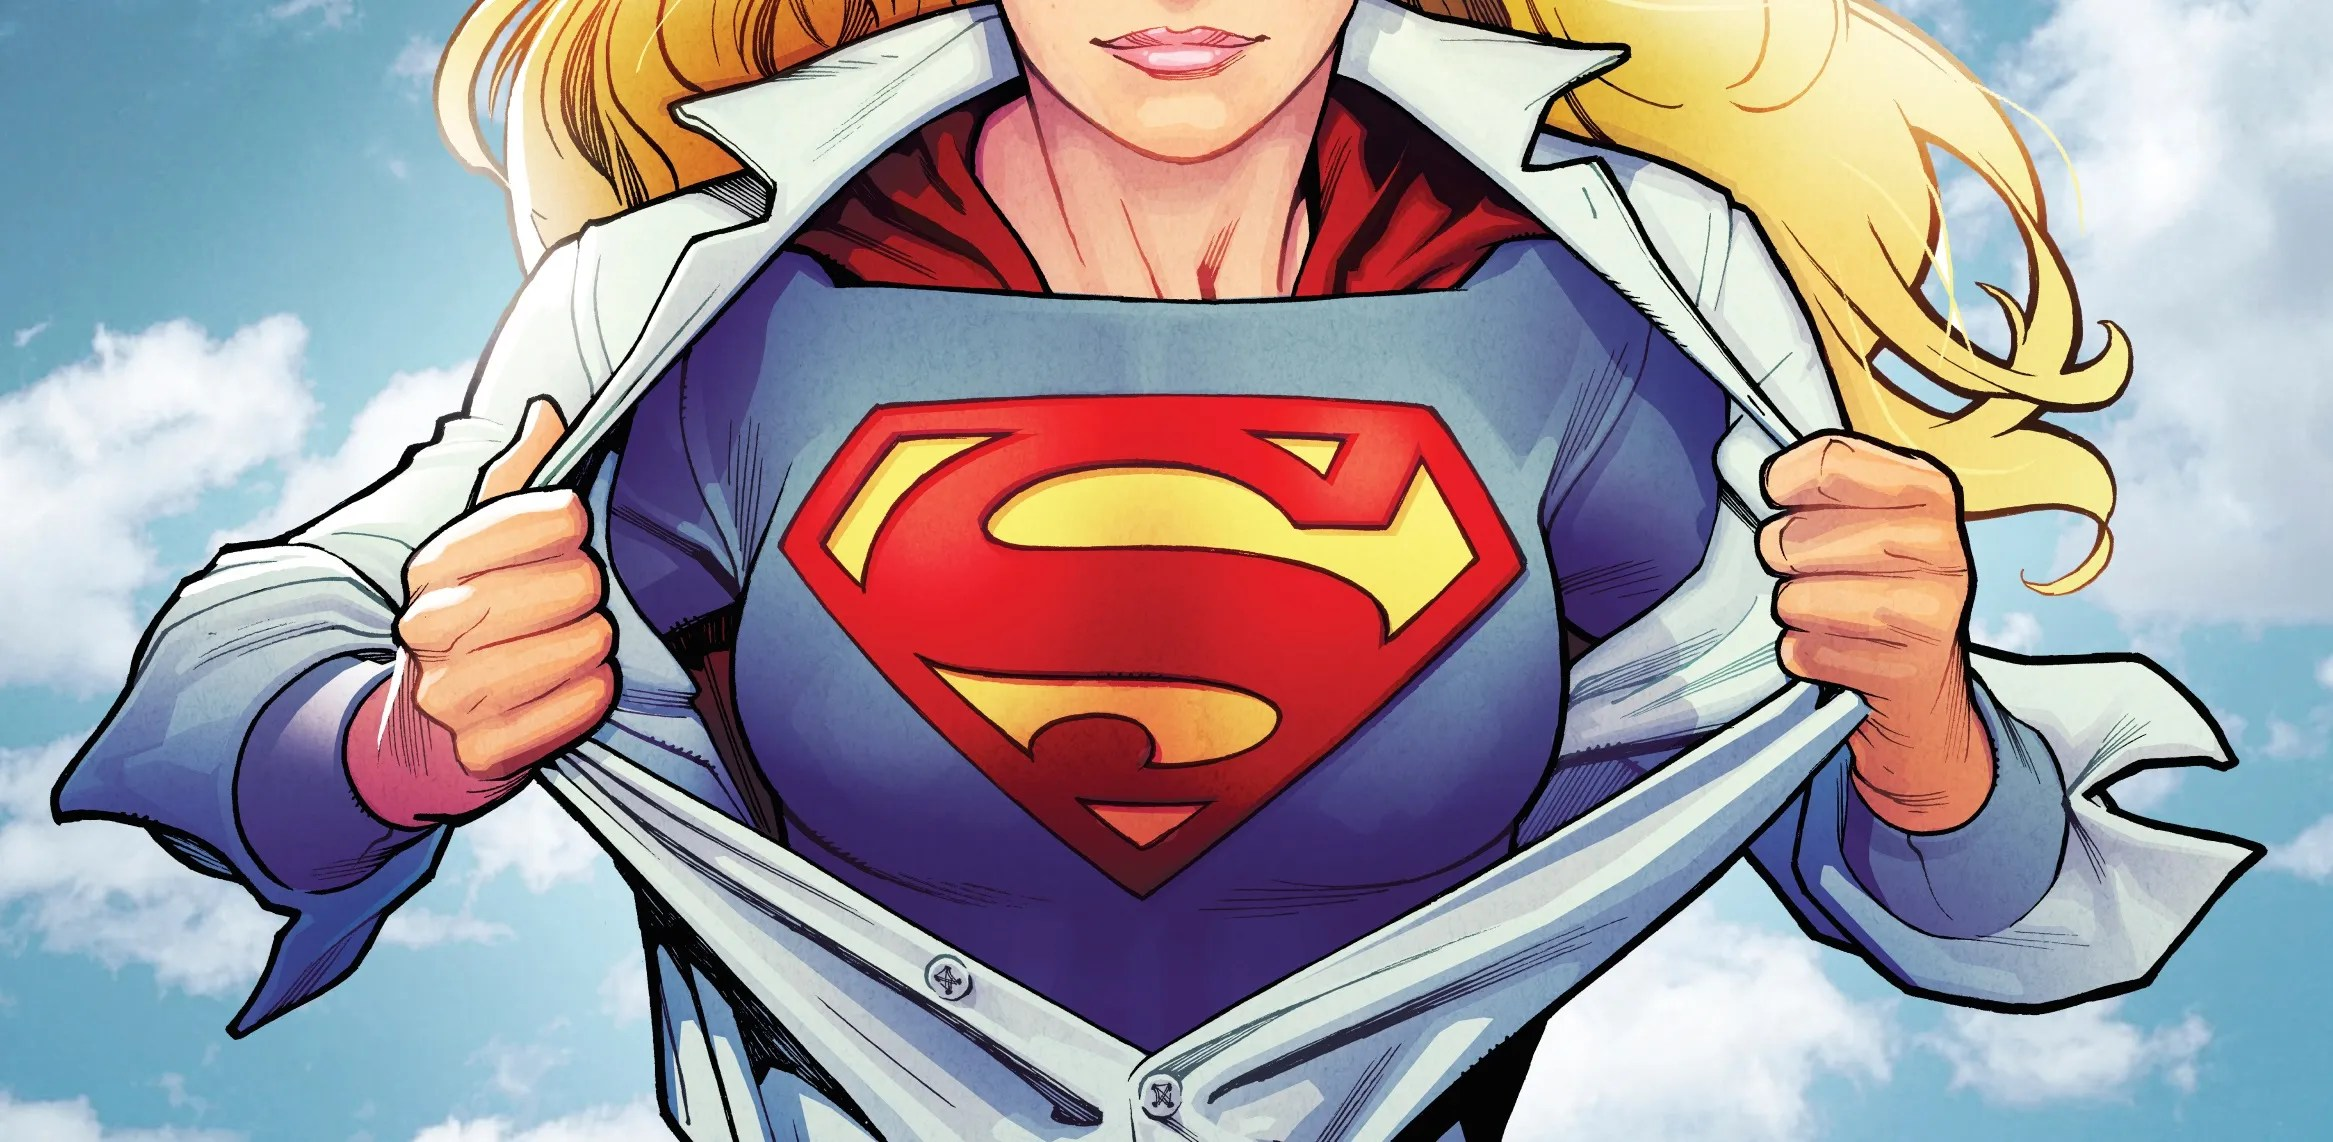 10 Things to Know About Supergirl Before Her TV Series